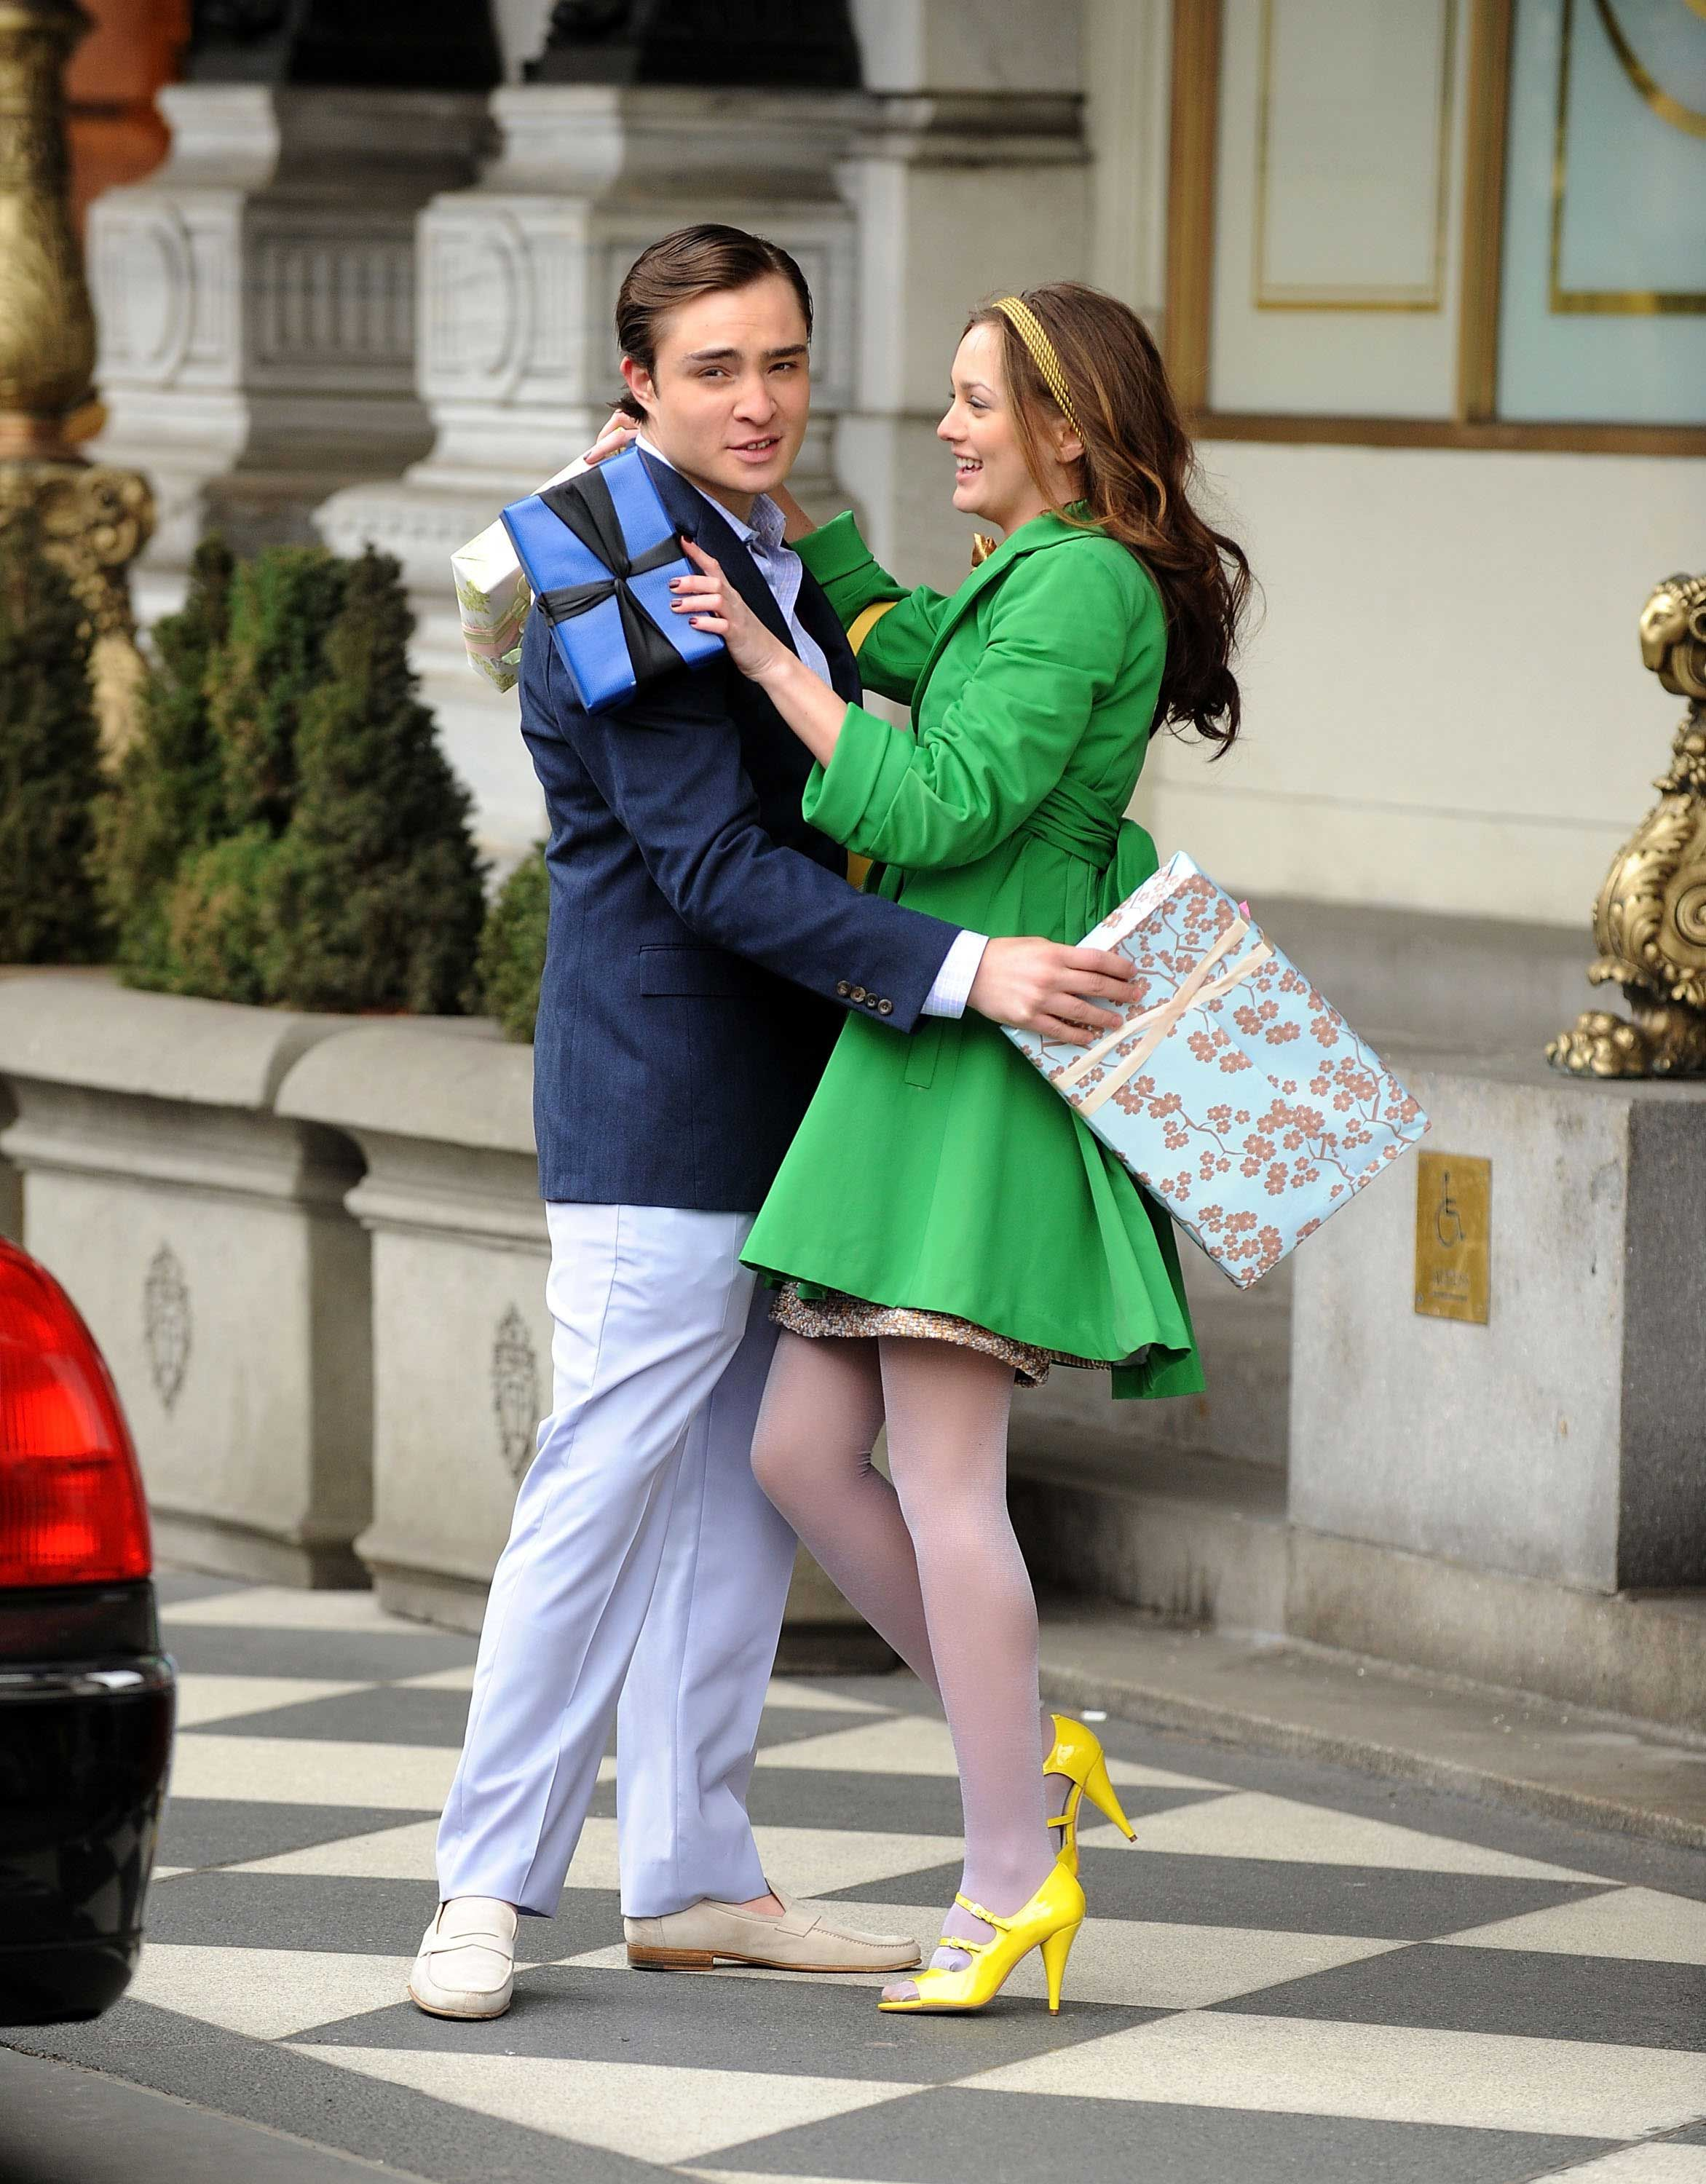 Rich People TV Shows - 12 Television Shows About Rich People